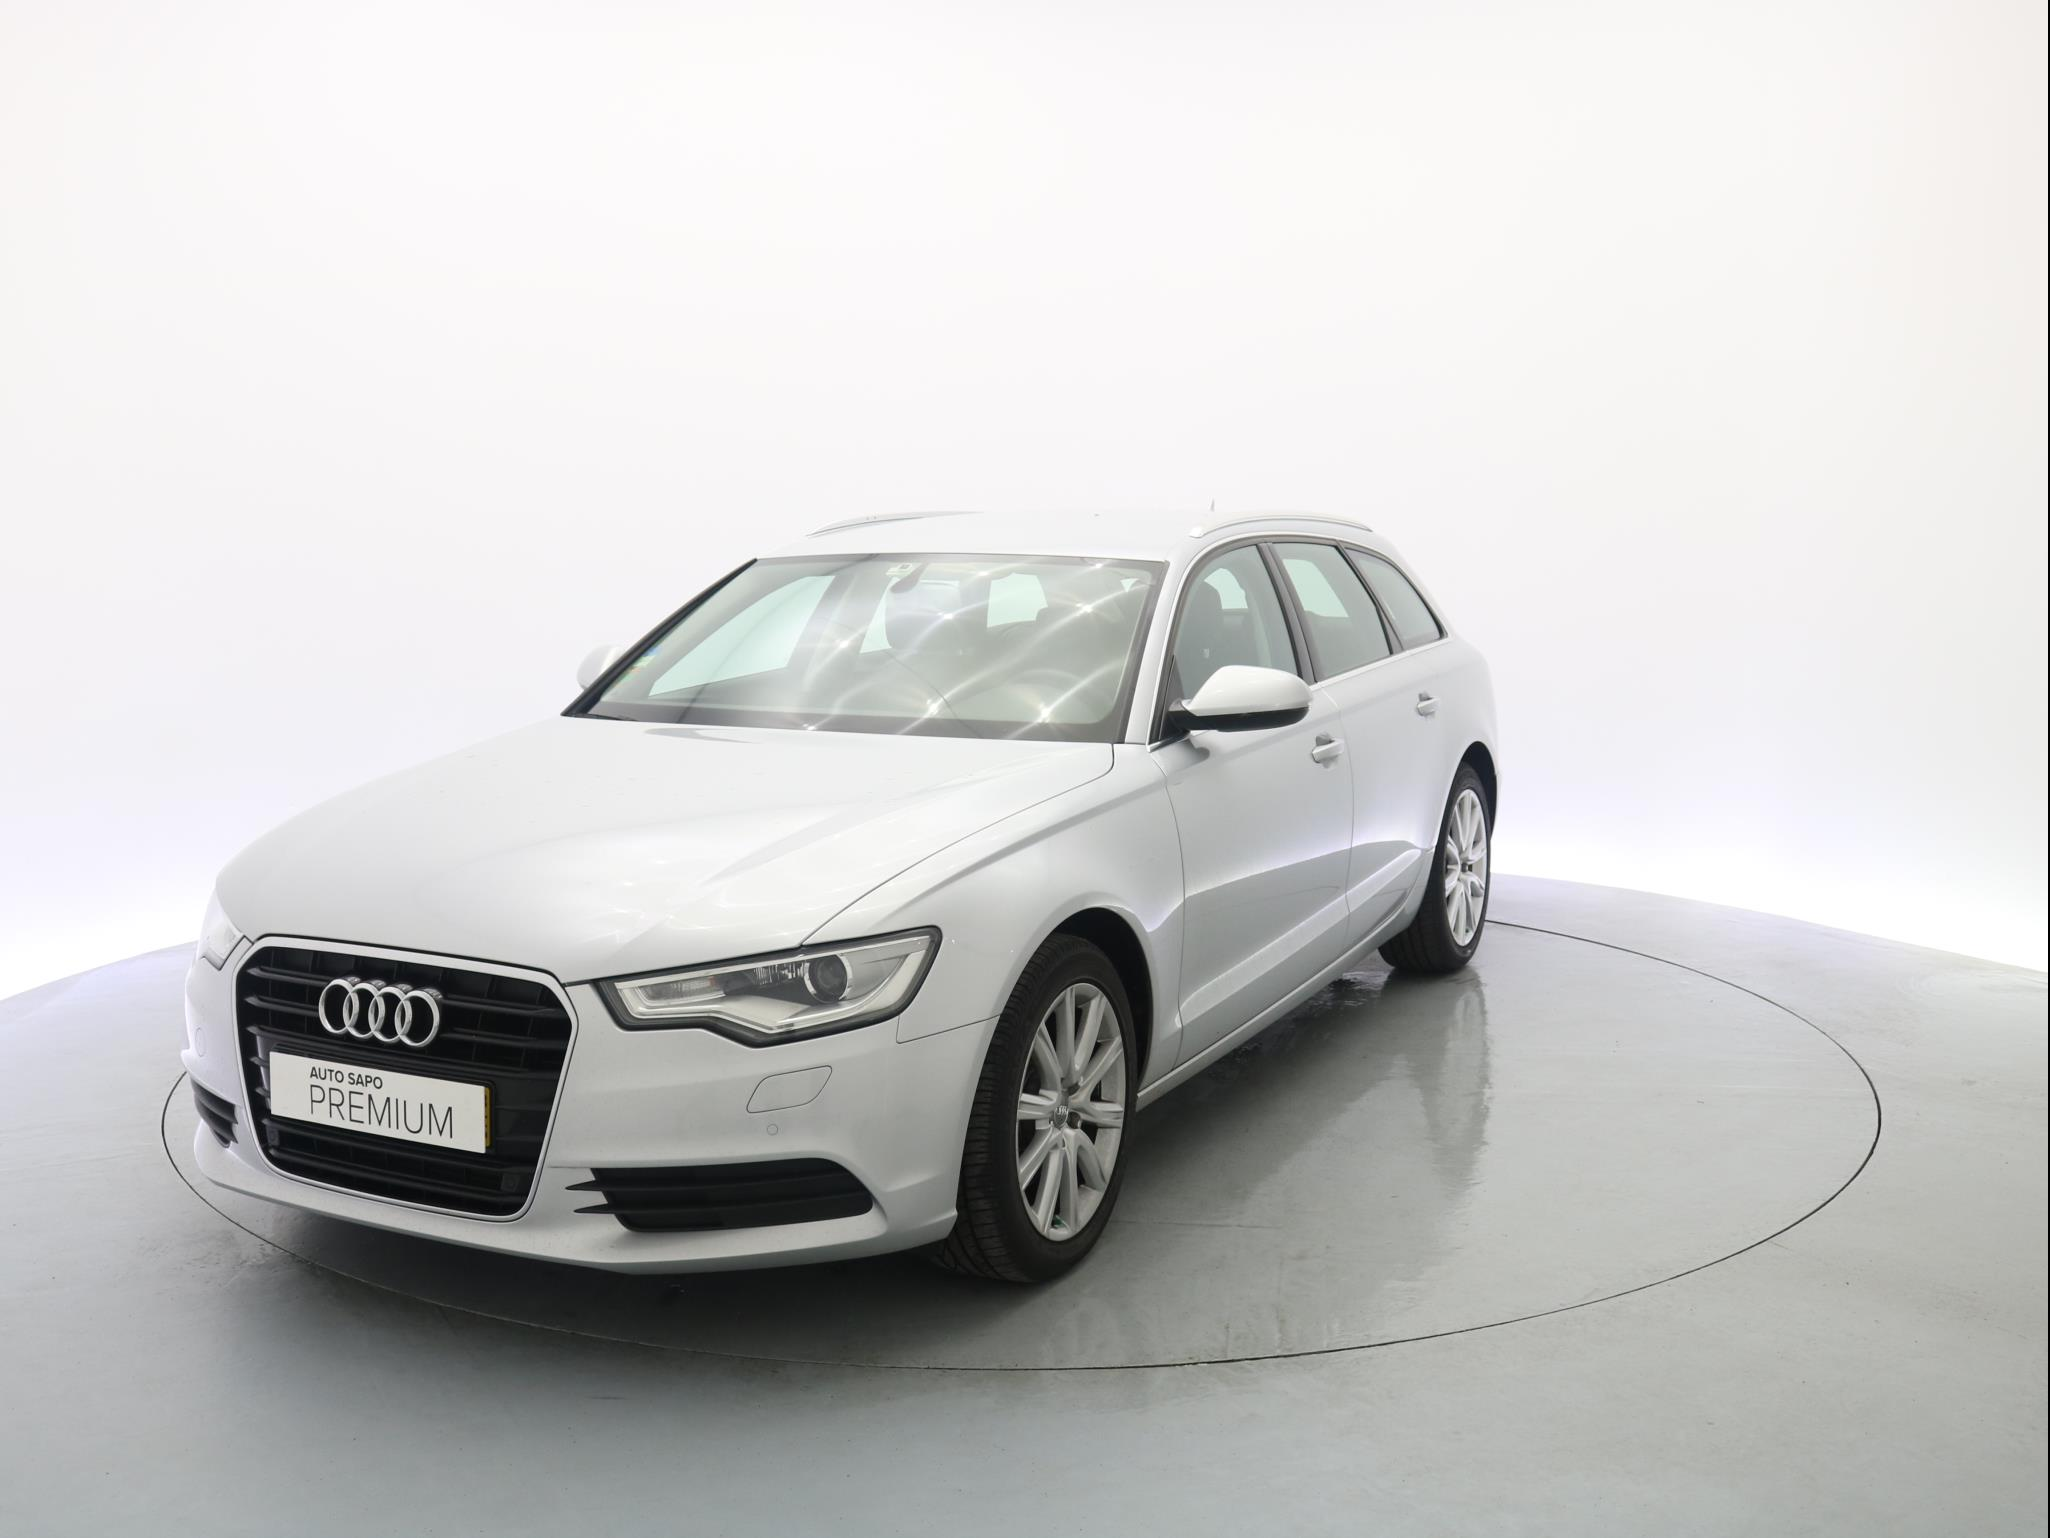 Audi A6 Avant 2.0 TDi Multitronic Business Line